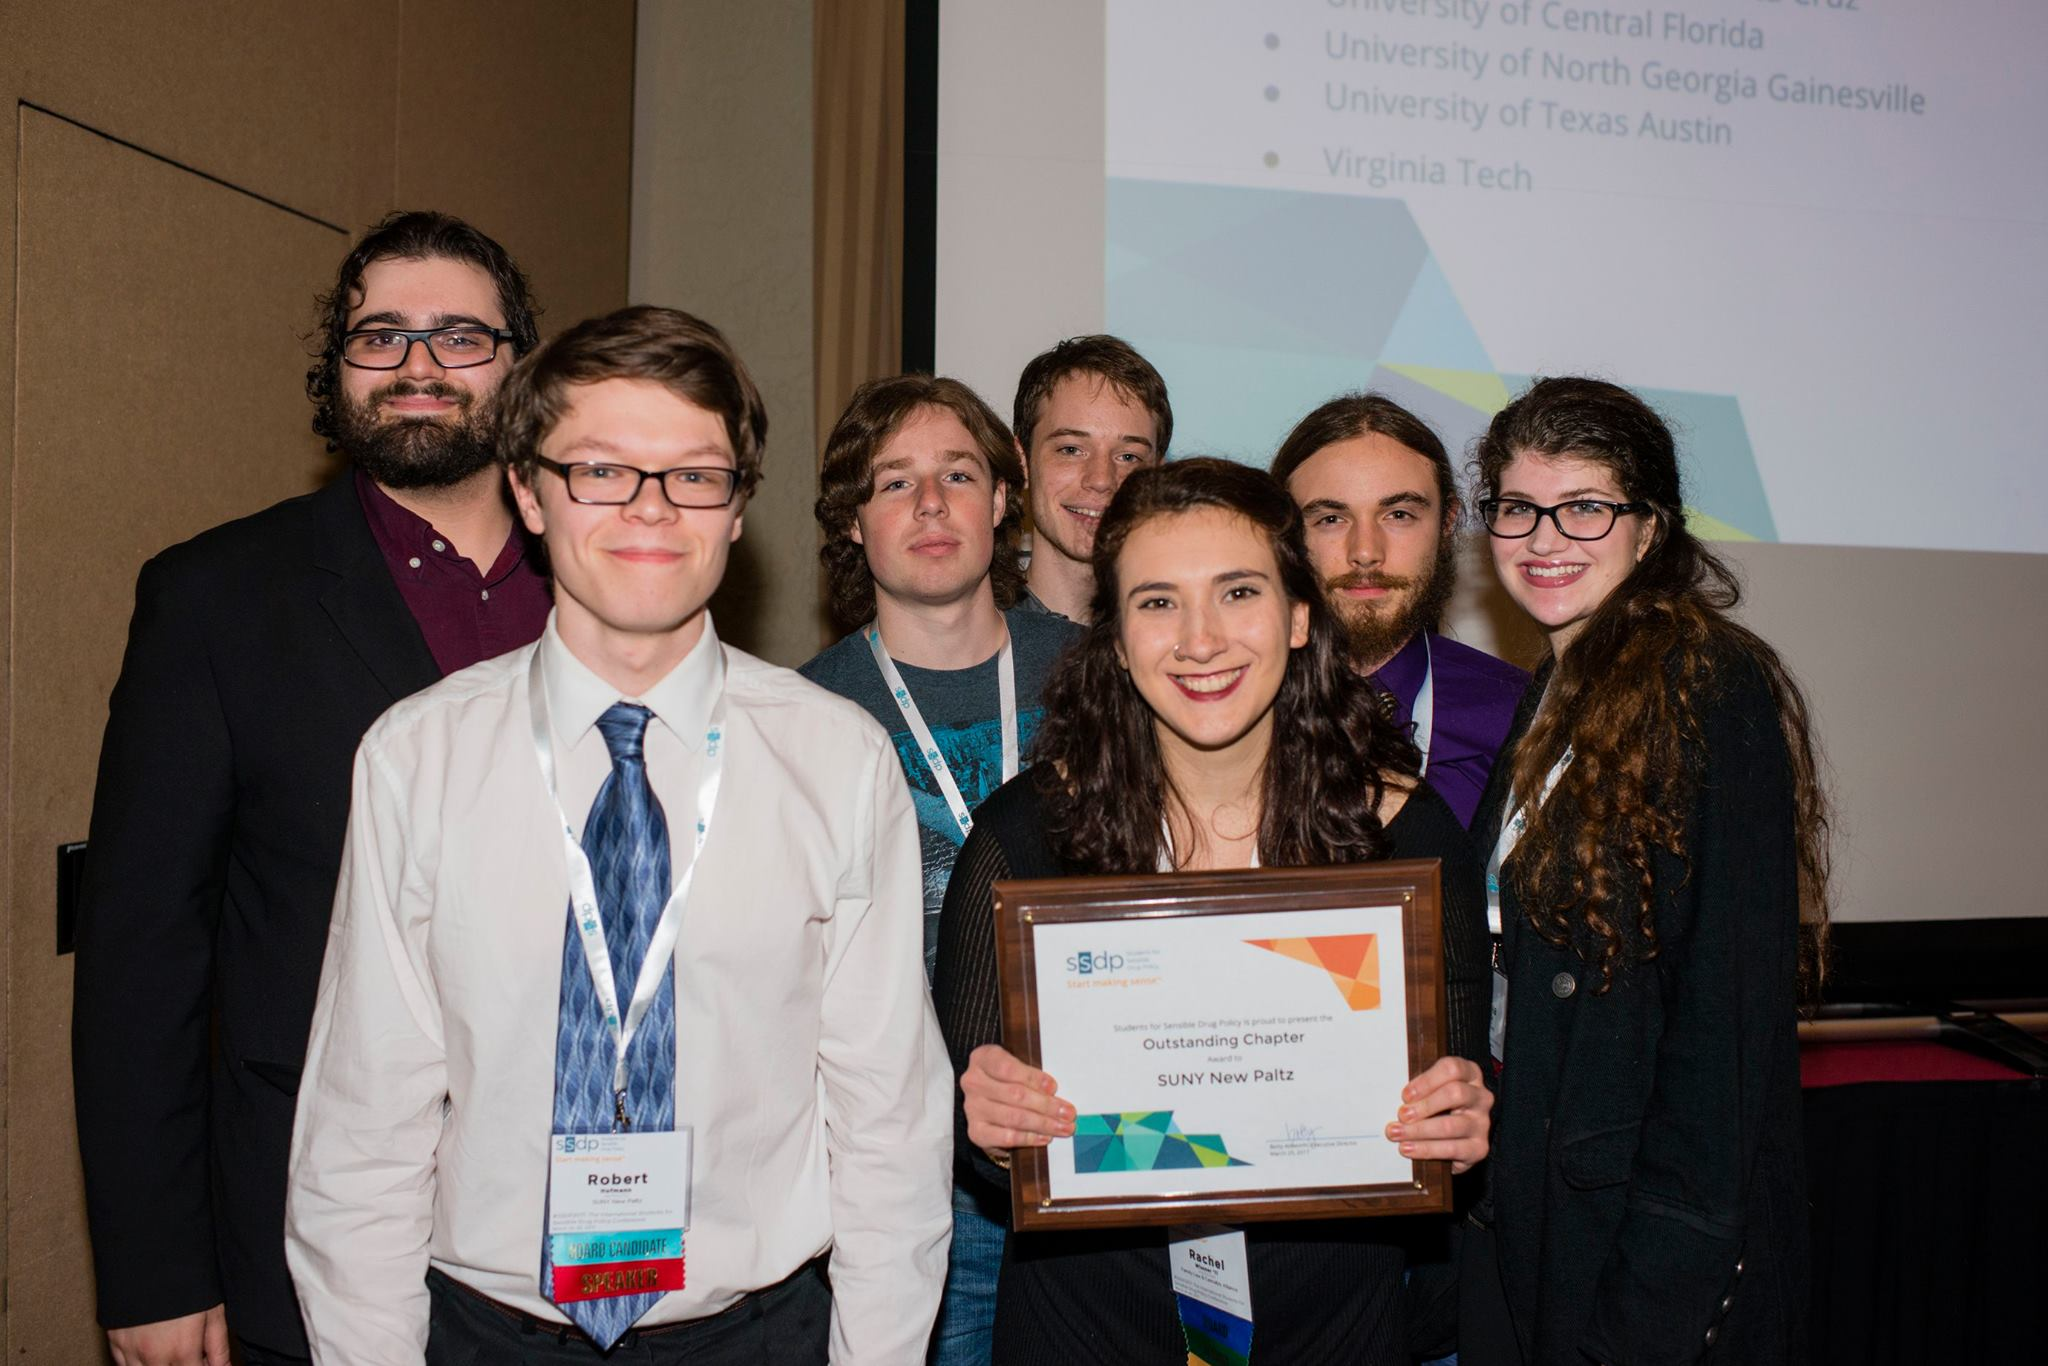 Seven young people smiling with an award plaque